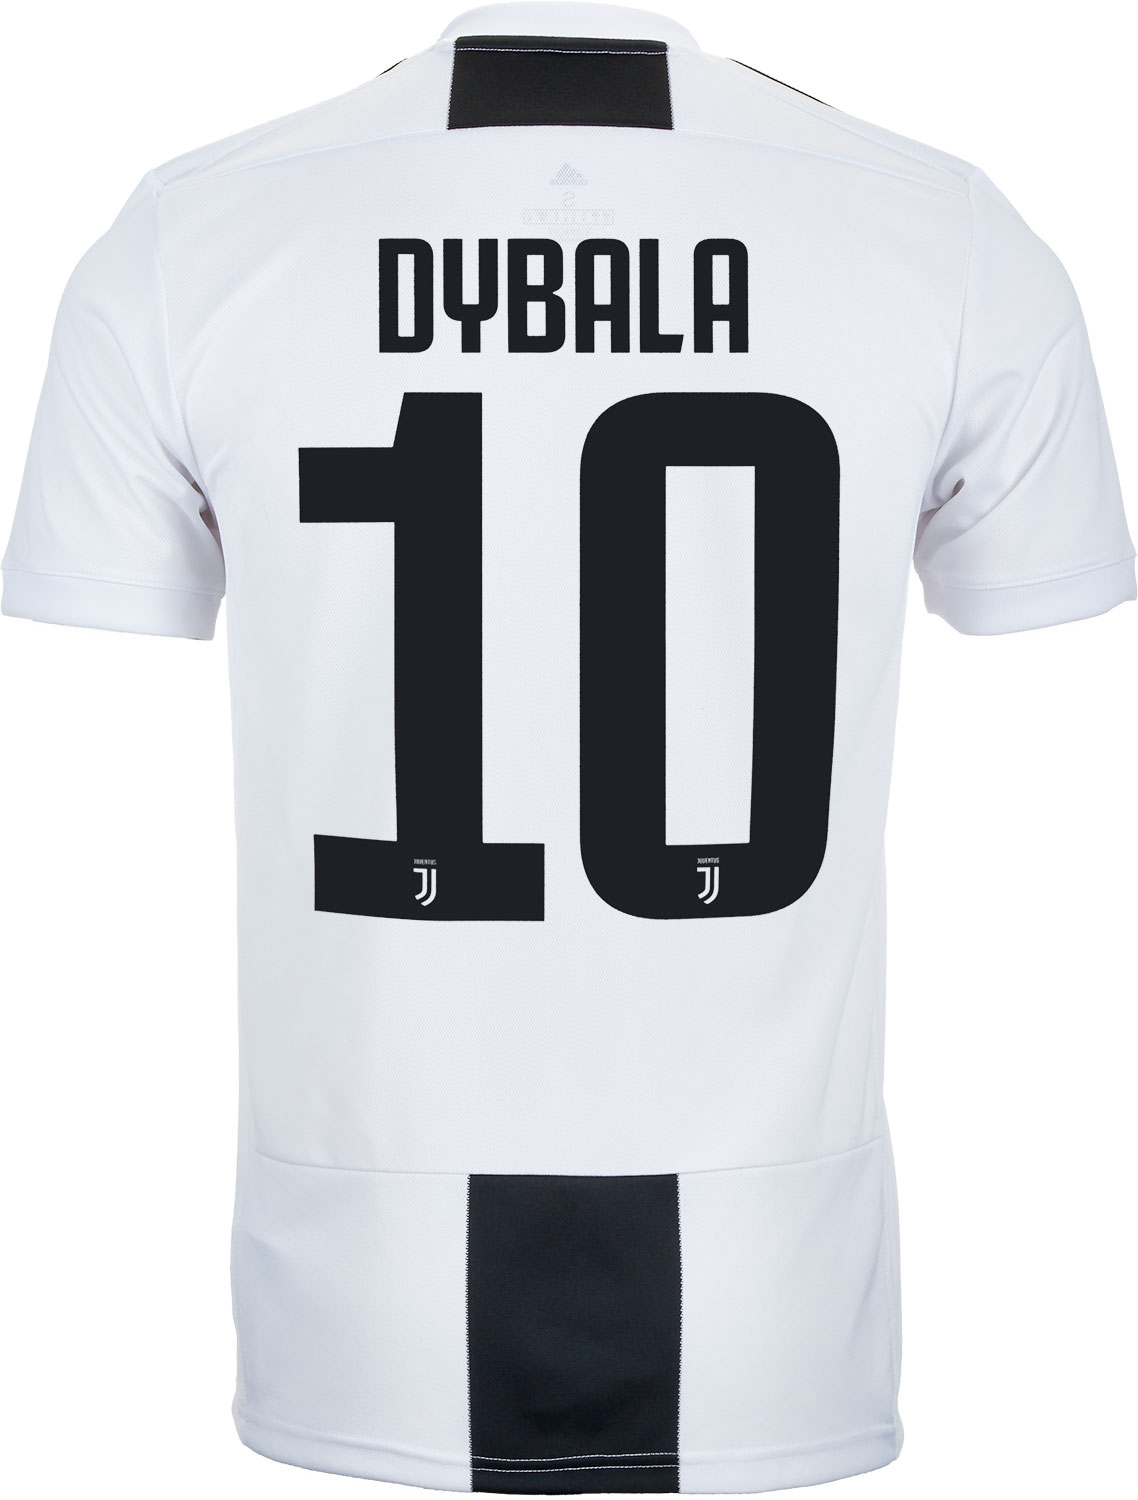 pretty nice 24f21 d214f adidas Paulo Dybala Juventus Home Jersey - Youth 2018-19 ...